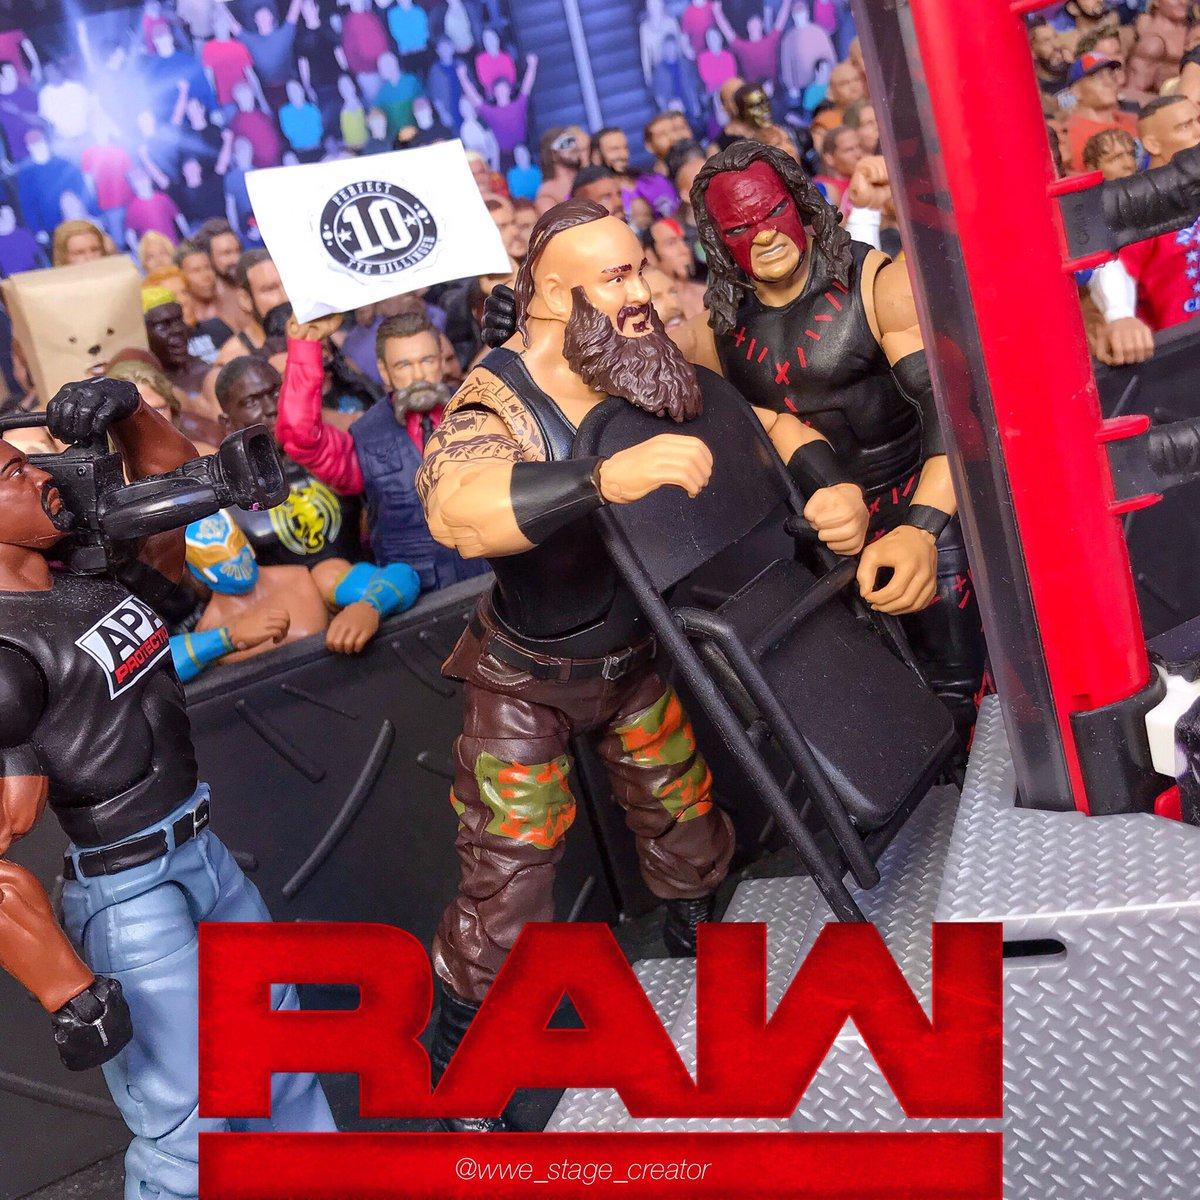 steel chair in wwe purple desk stage creator on twitter kane crushes the throat of braunstrowman with a raw kanewwepic com lfp23xjwuu